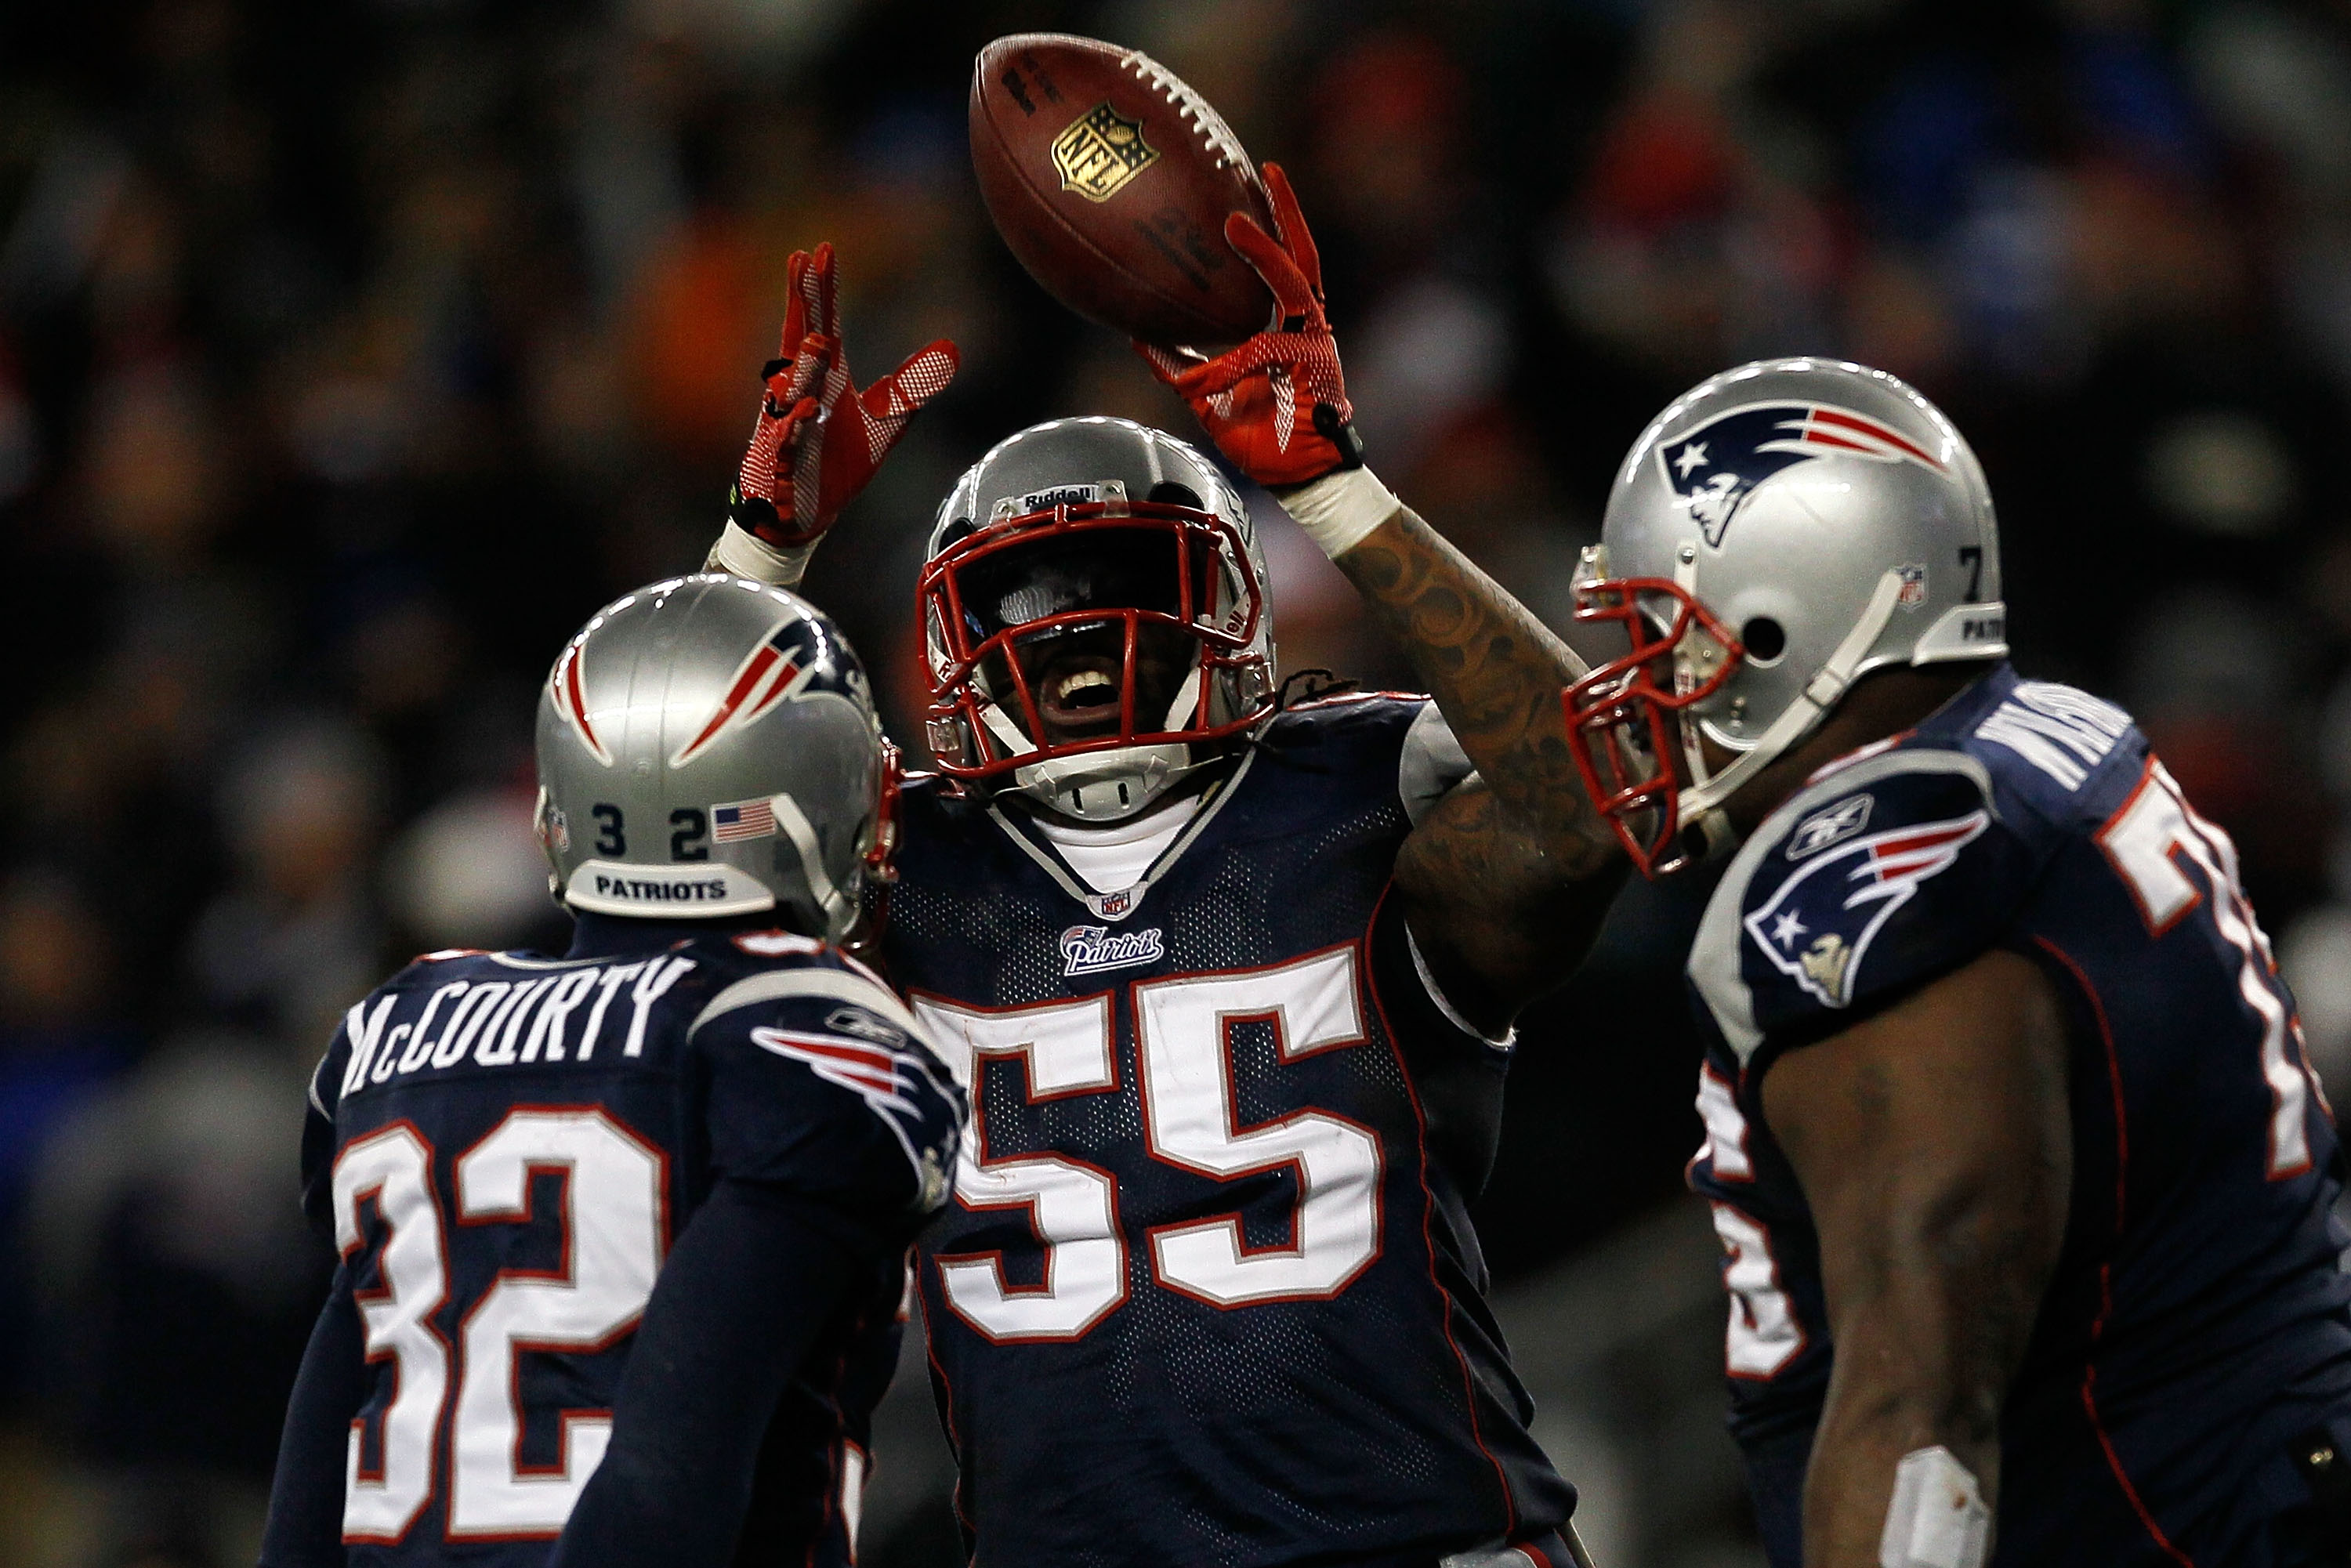 FOXBORO, MA - DECEMBER 06:  (L-R) Devin McCourty #32, Brandon Spikes #55 and Vince Wilfork #75 of the New England Patriots celebrate after McCourty intercepted a pass in the third quarter against the New York Jets at Gillette Stadium on December 6, 2010 i